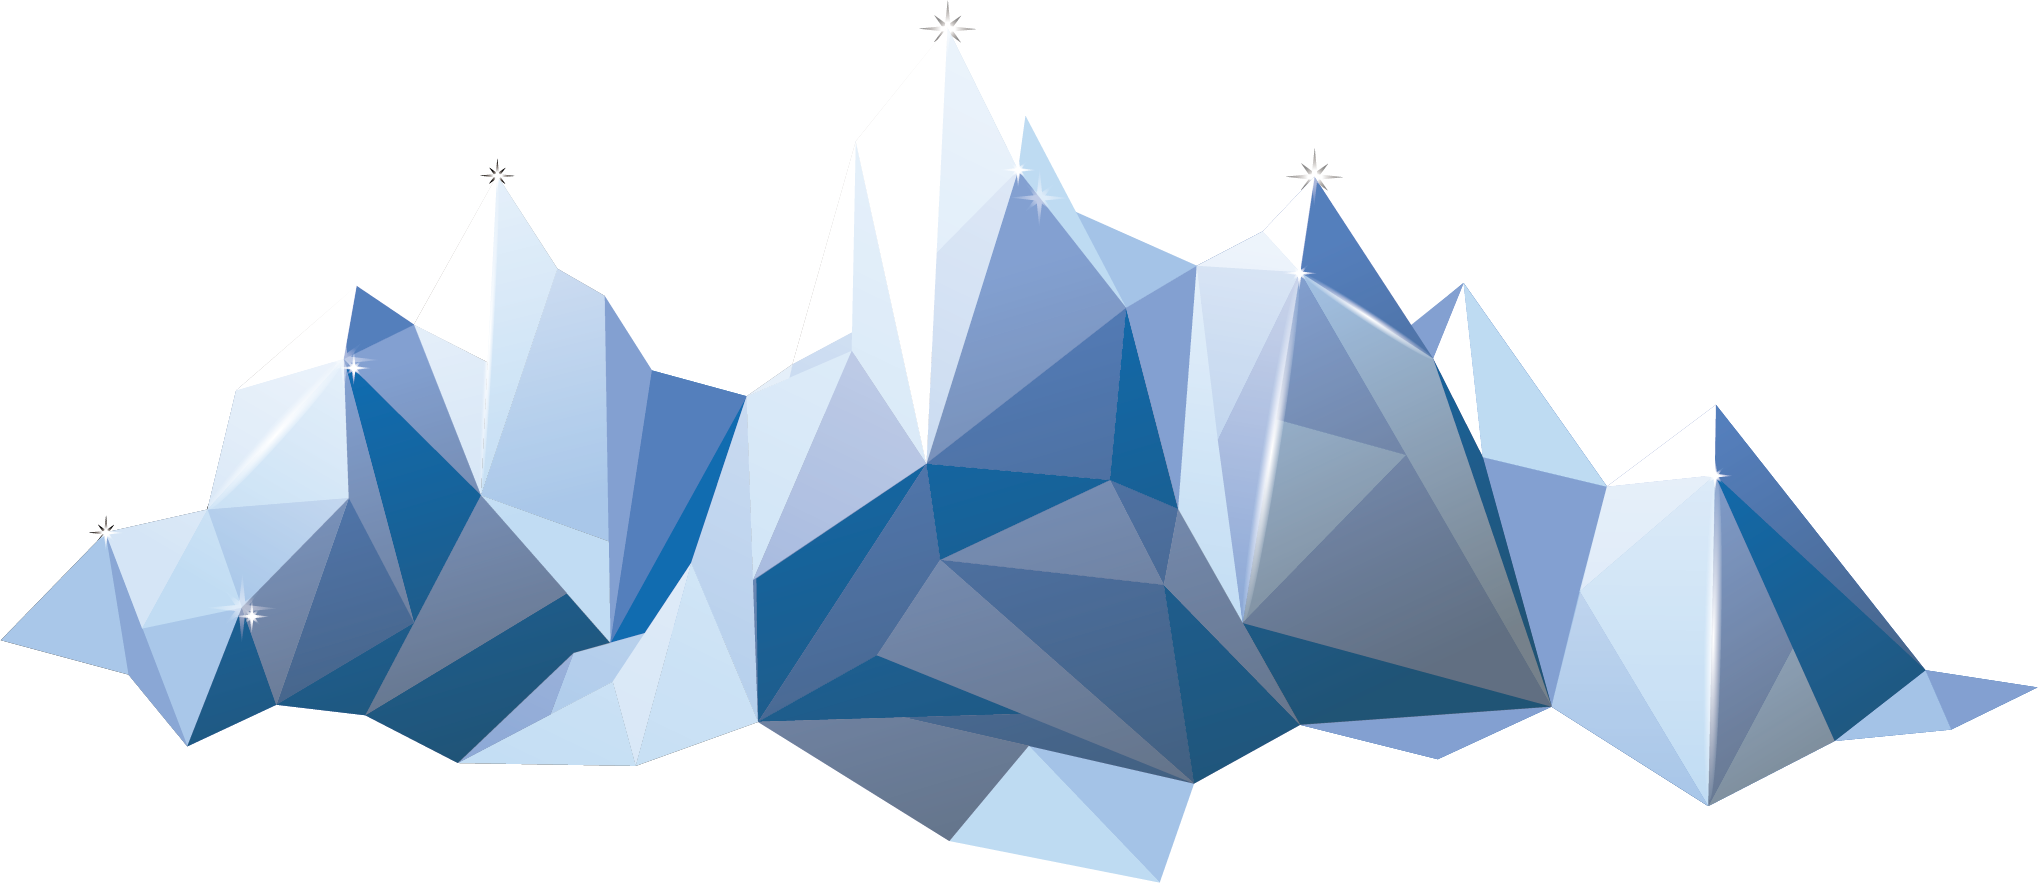 antarctica drawing iceberg